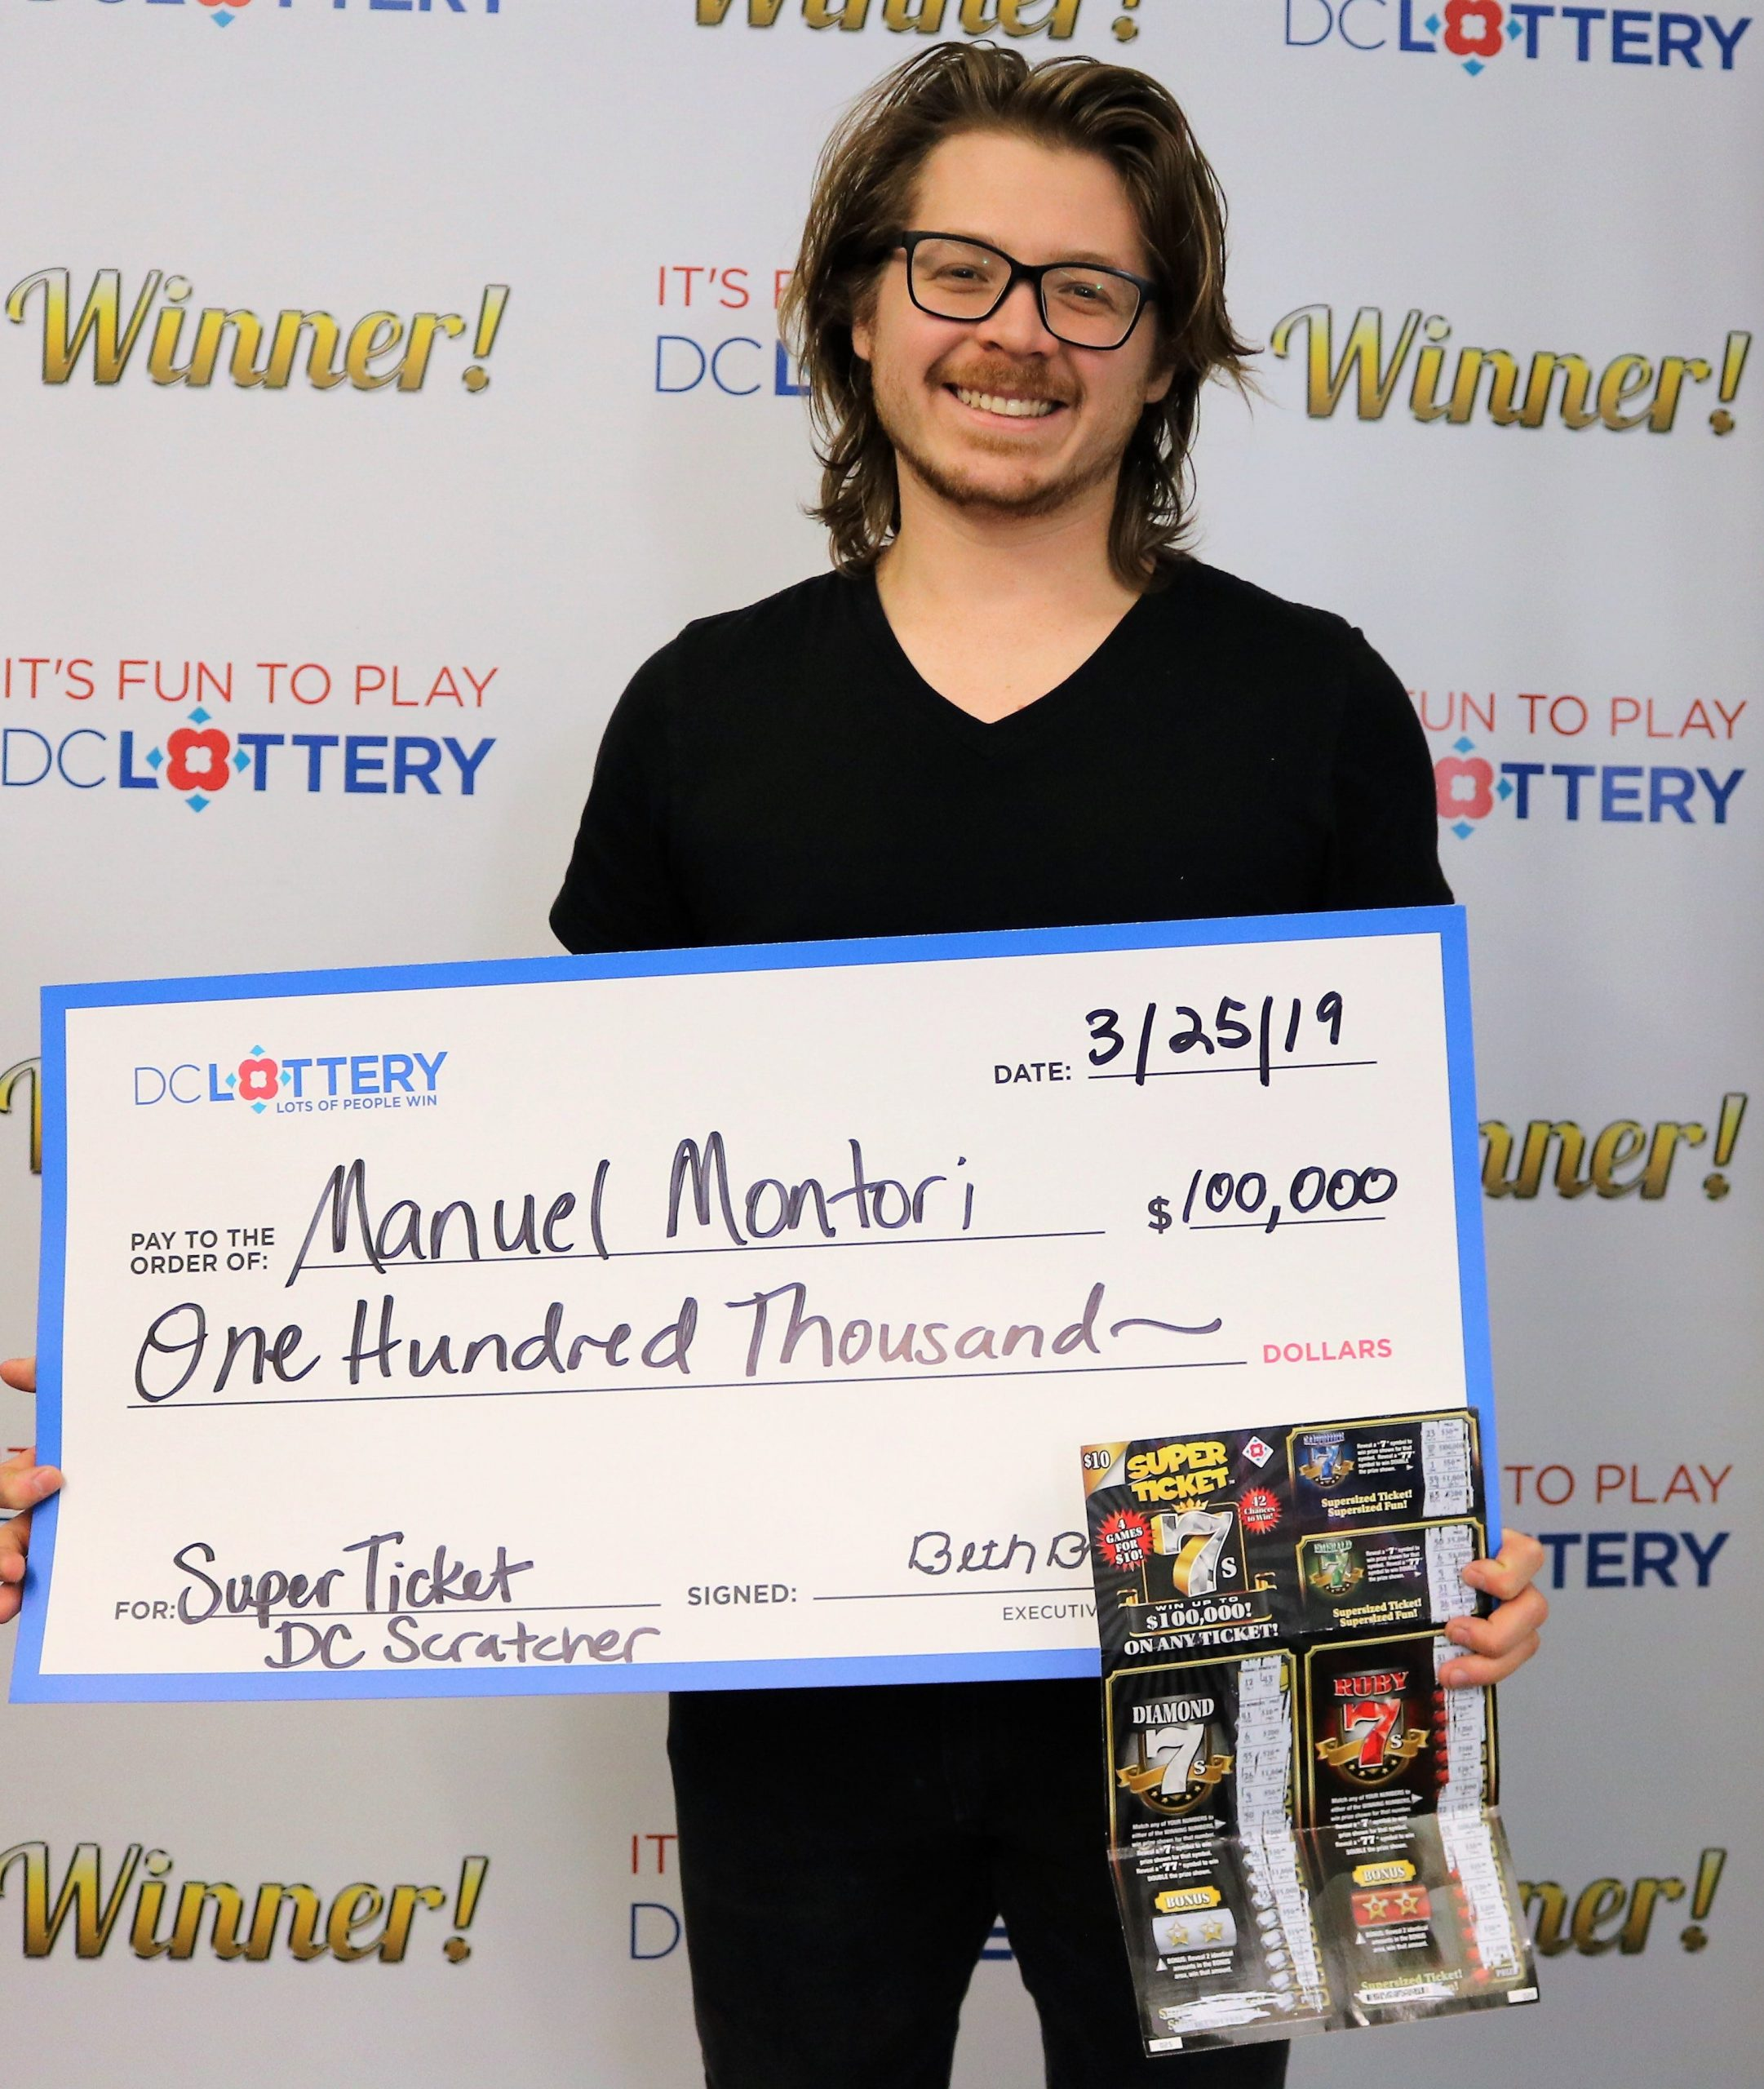 66 winning lottery tickets. $6.3 million. What's up with Ivy League group's winning streak?